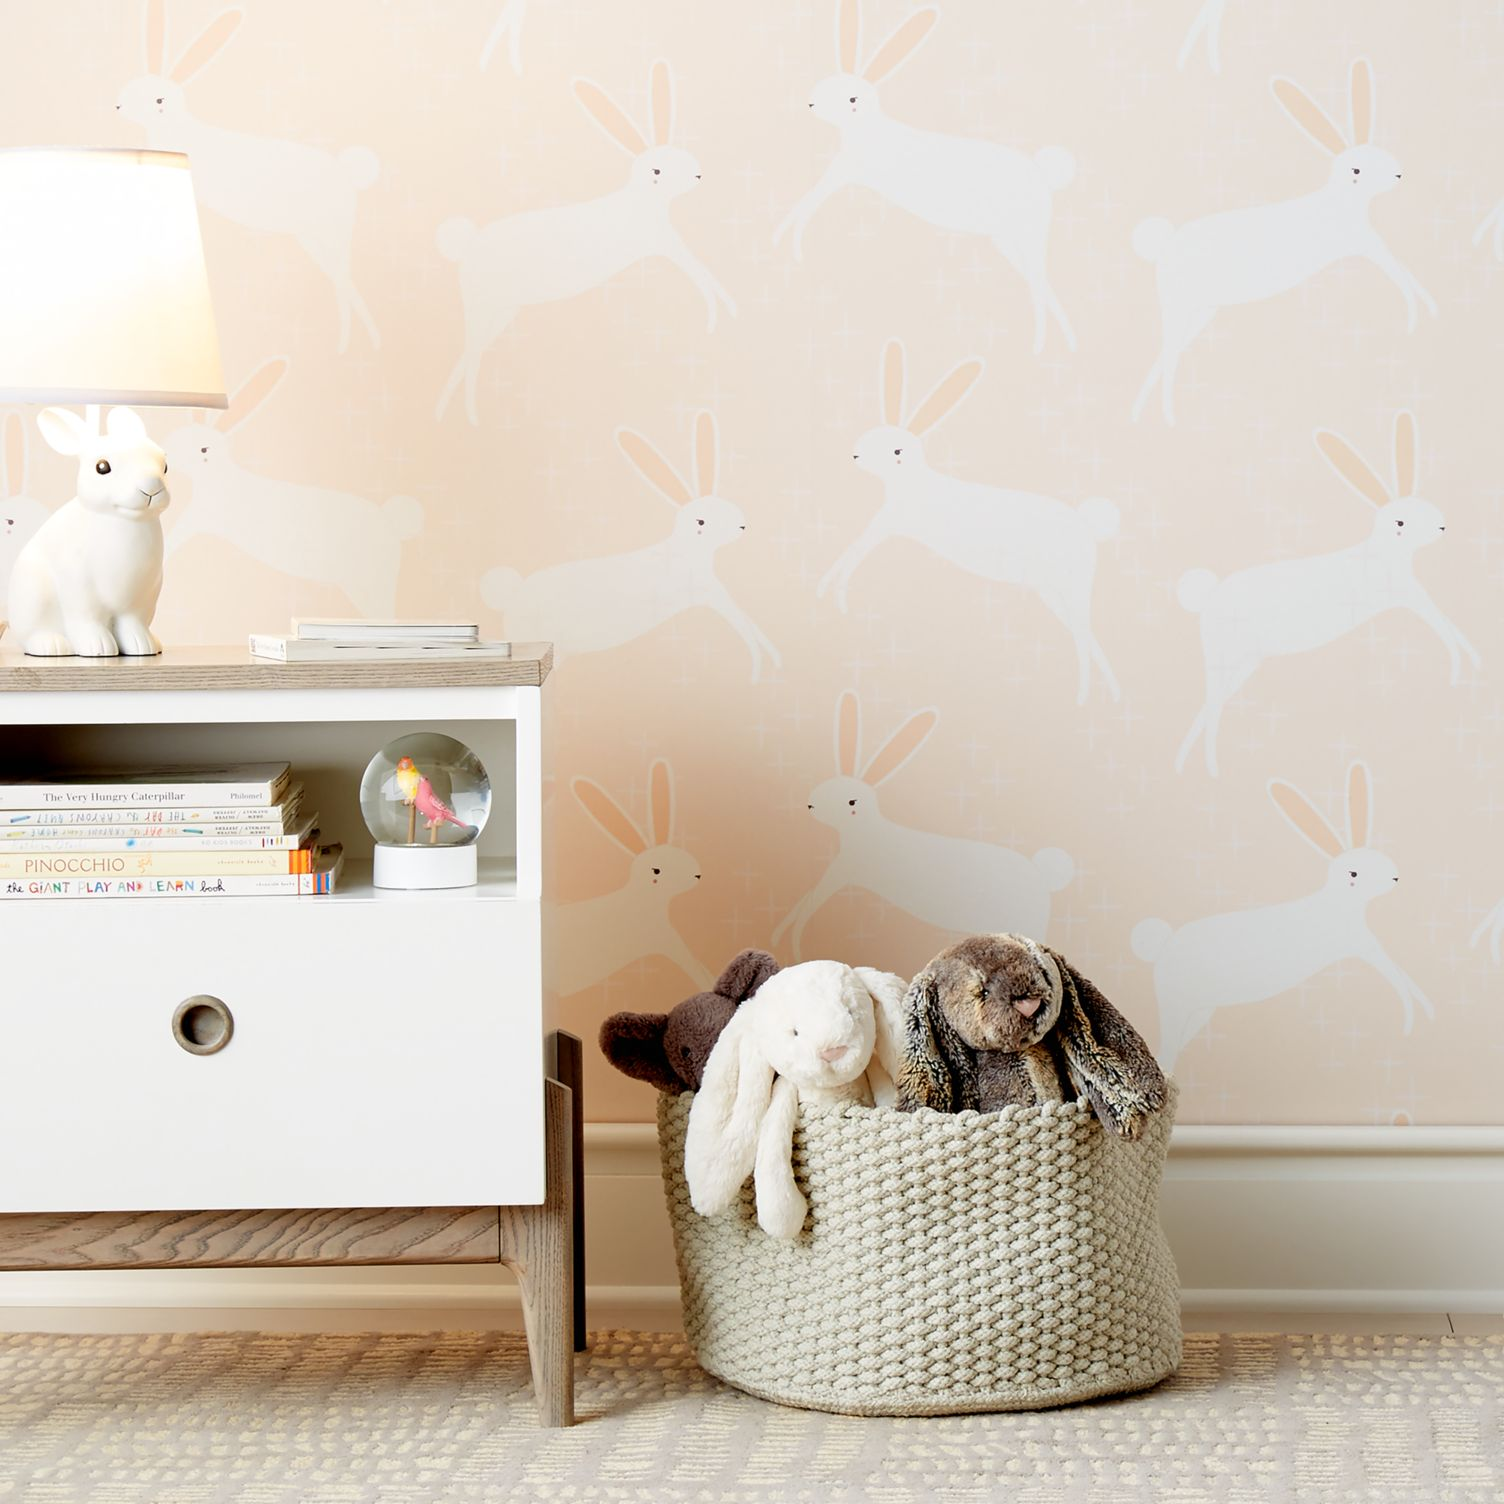 Bunny wallpaper from Crate & Kids